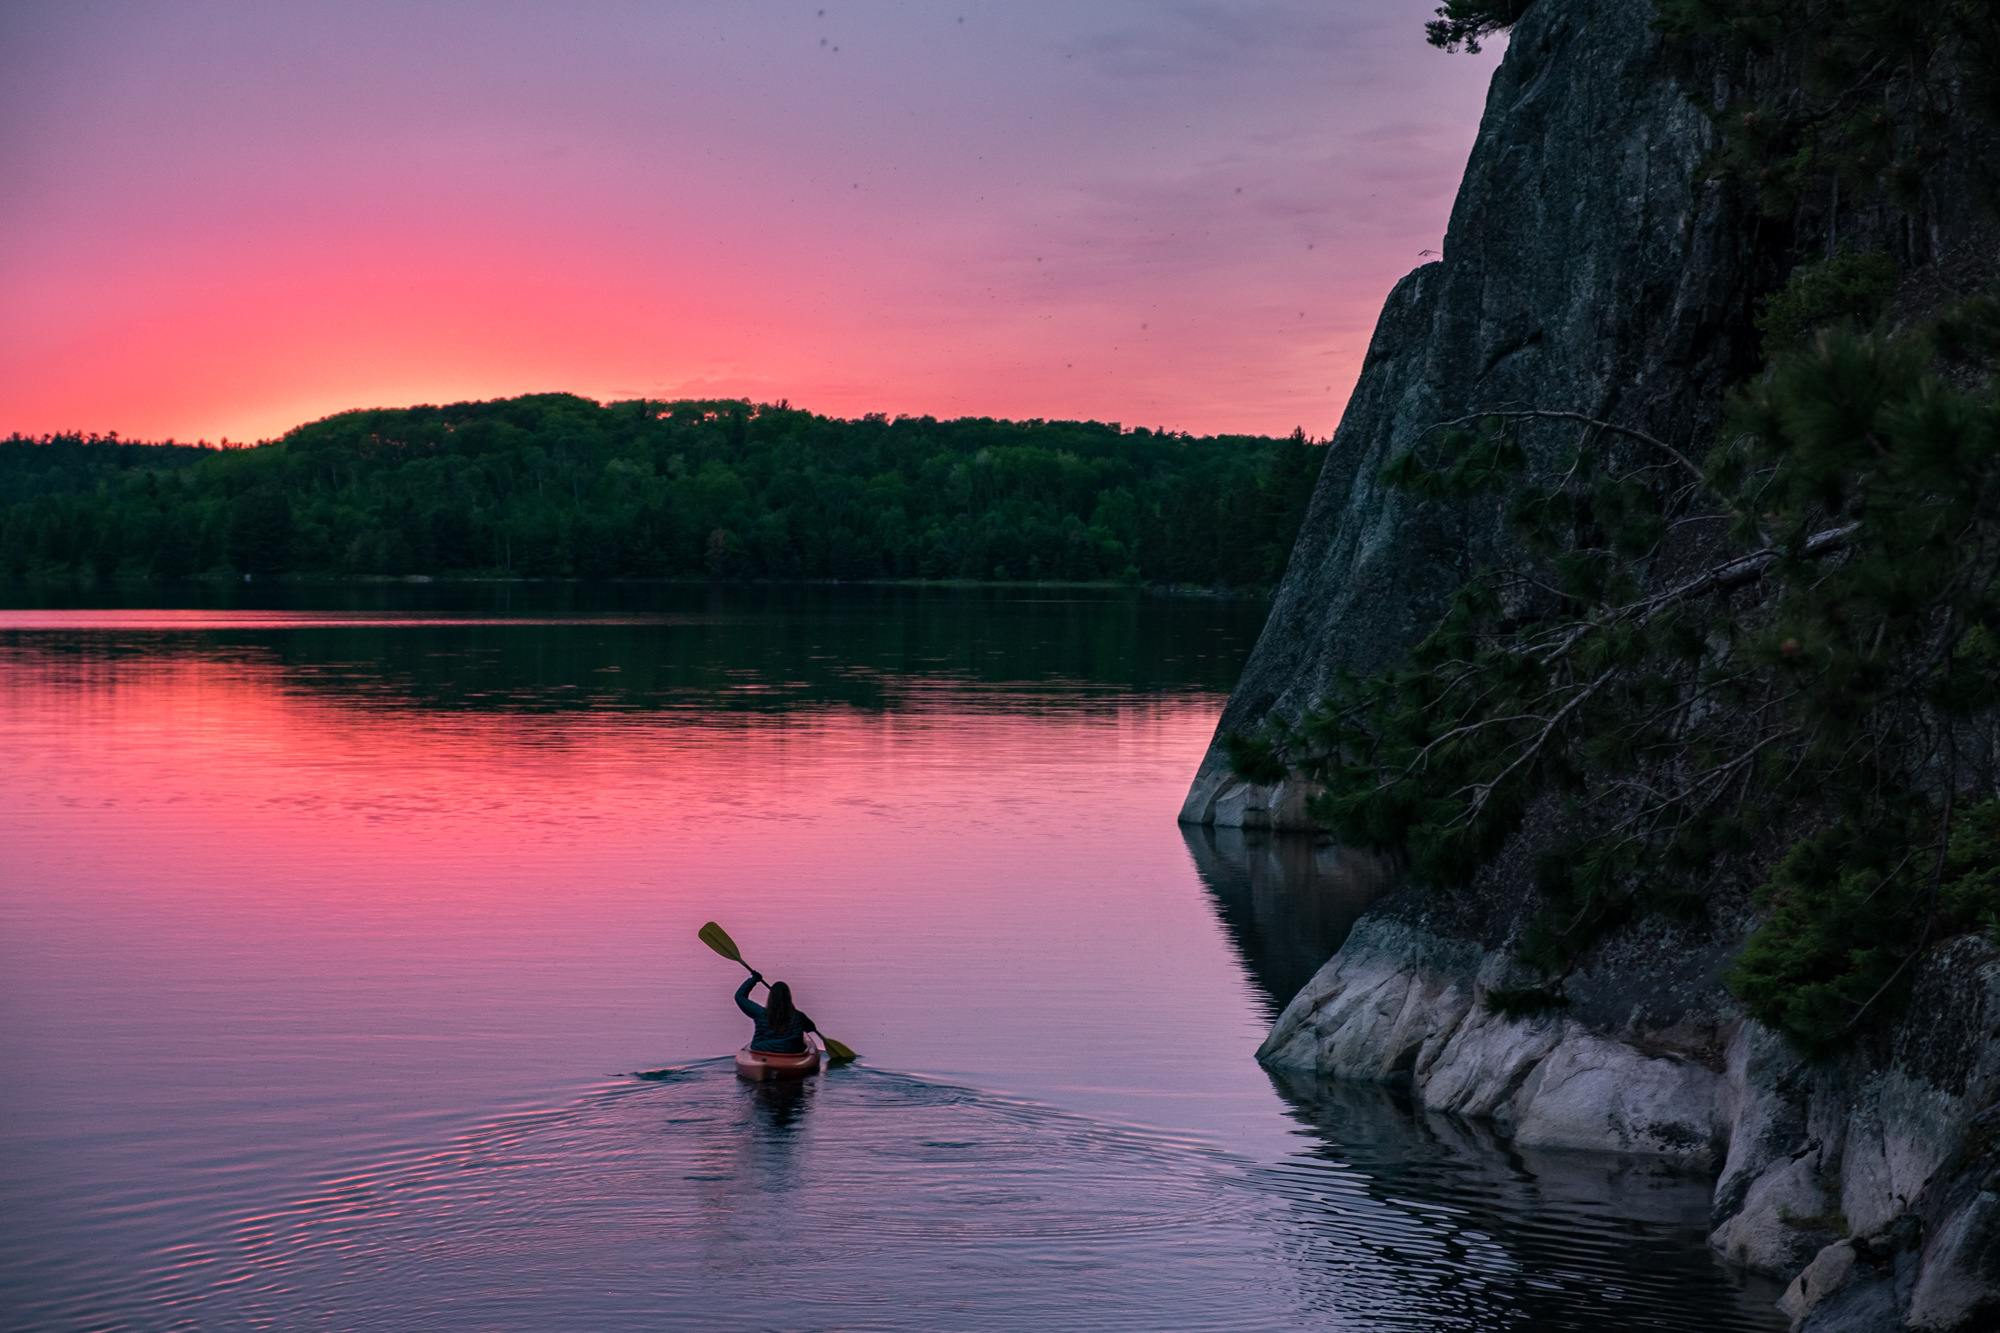 On our last night in the park, the sky rewarded us with one of the most beautiful sunsets  we've seen. Stef had to go out and paddle into the pink and blue hue.